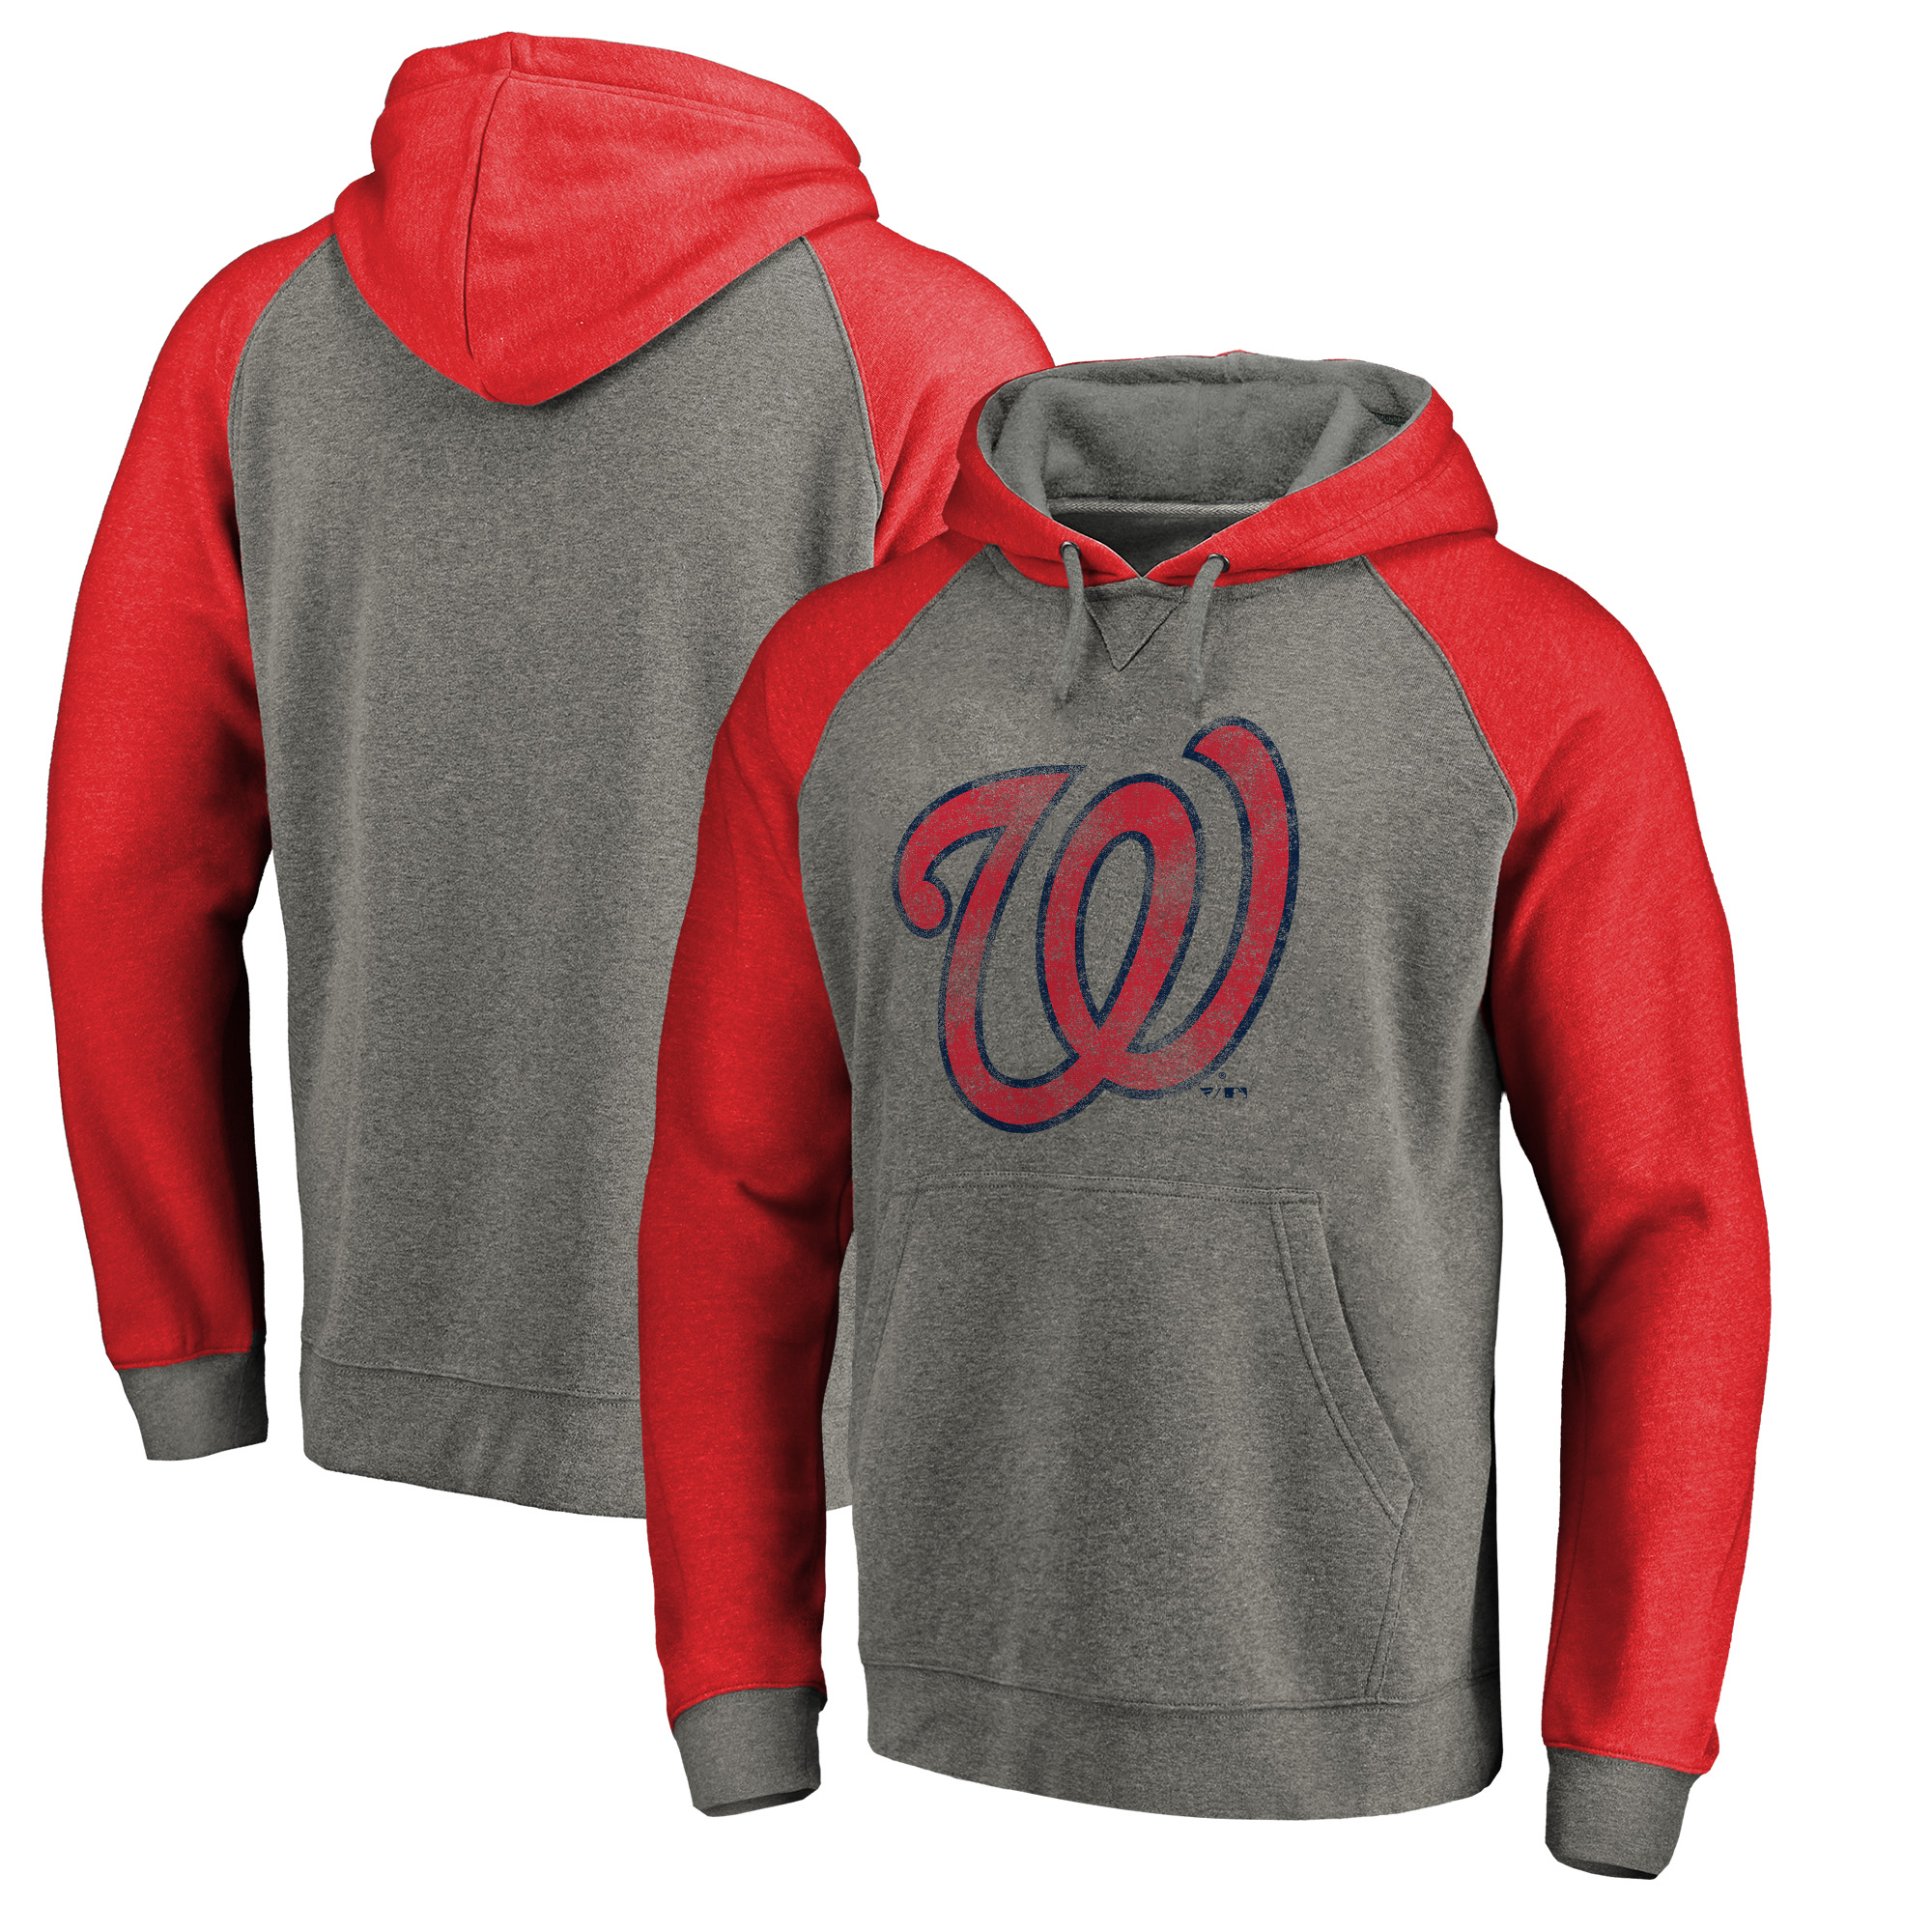 Washington Nationals Fanatics Branded Distressed Team Logo Tri-Blend Raglan Pullover Hoodie - Gray/Red